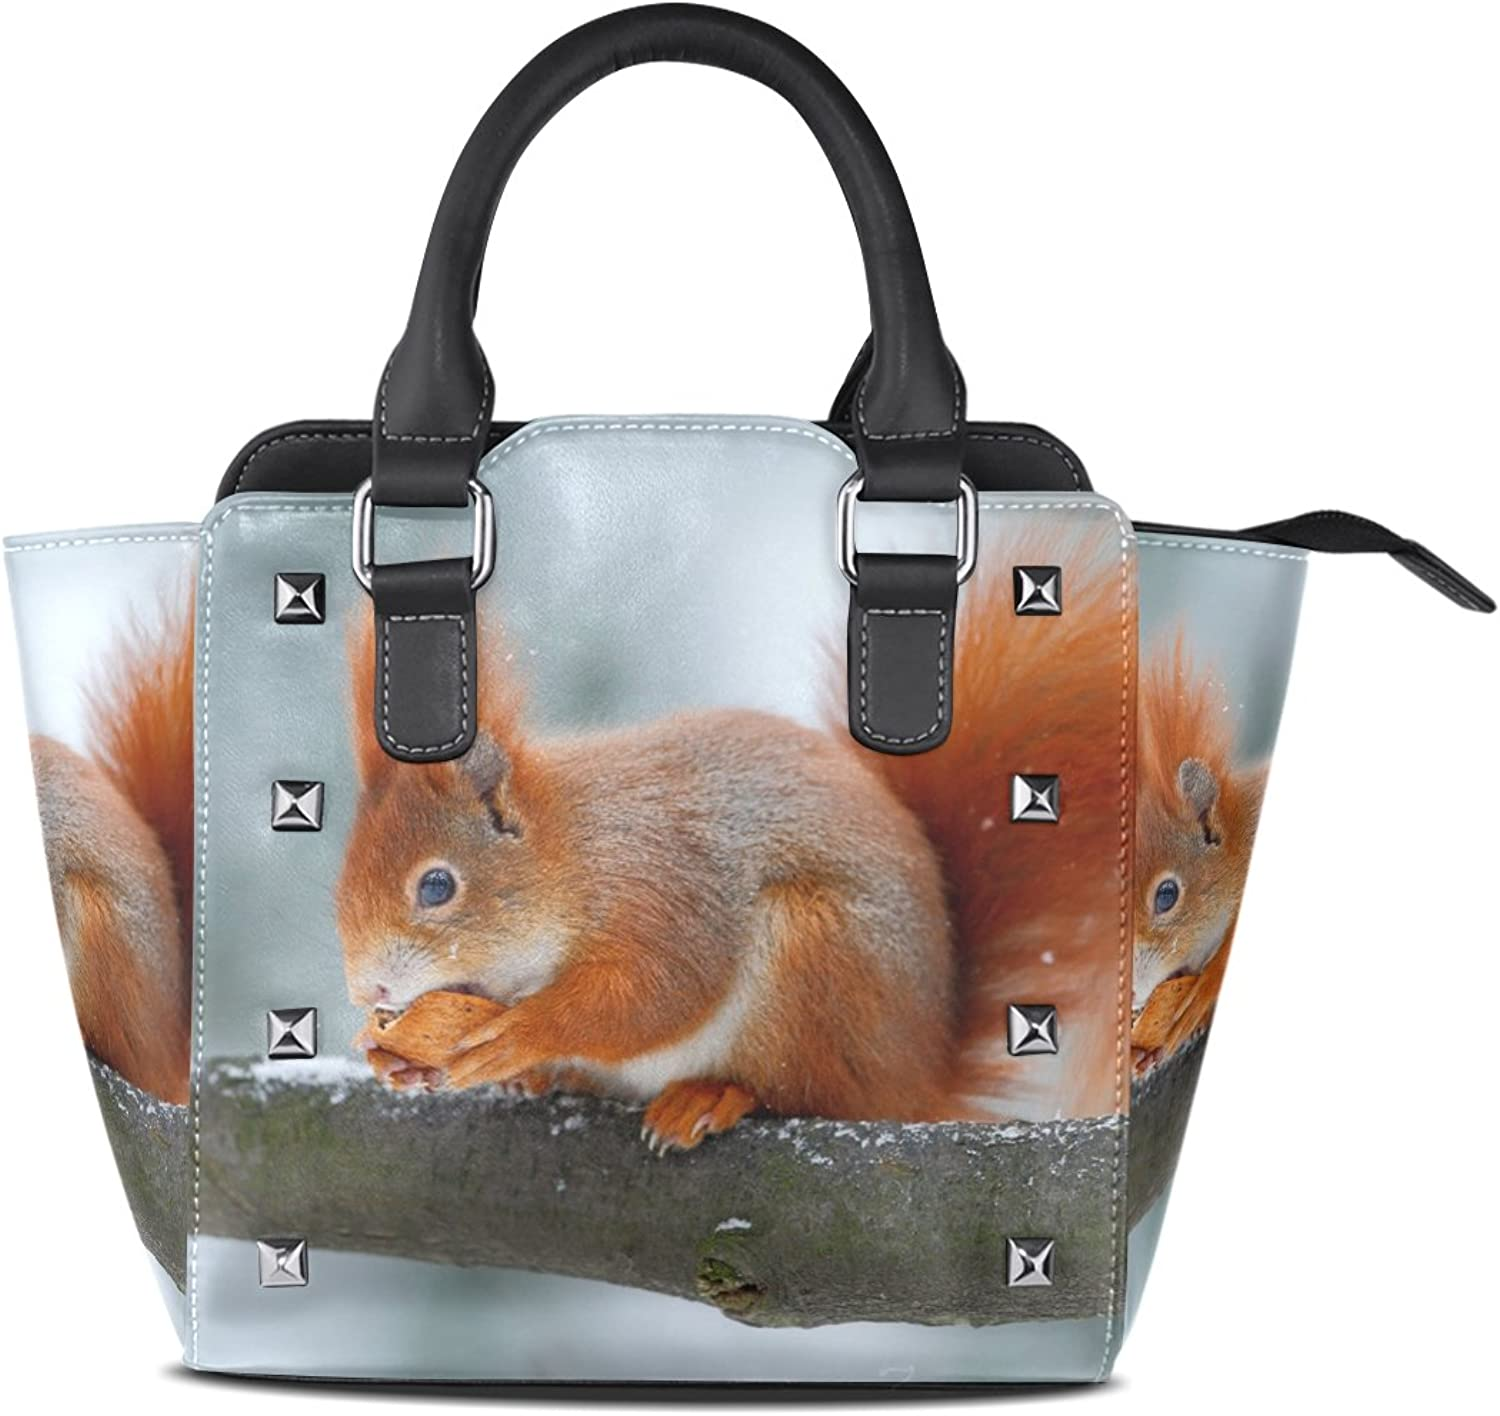 Sunlome Cute orange Red Squirrel Print Handbags Women's PU Leather Top-Handle Shoulder Bags